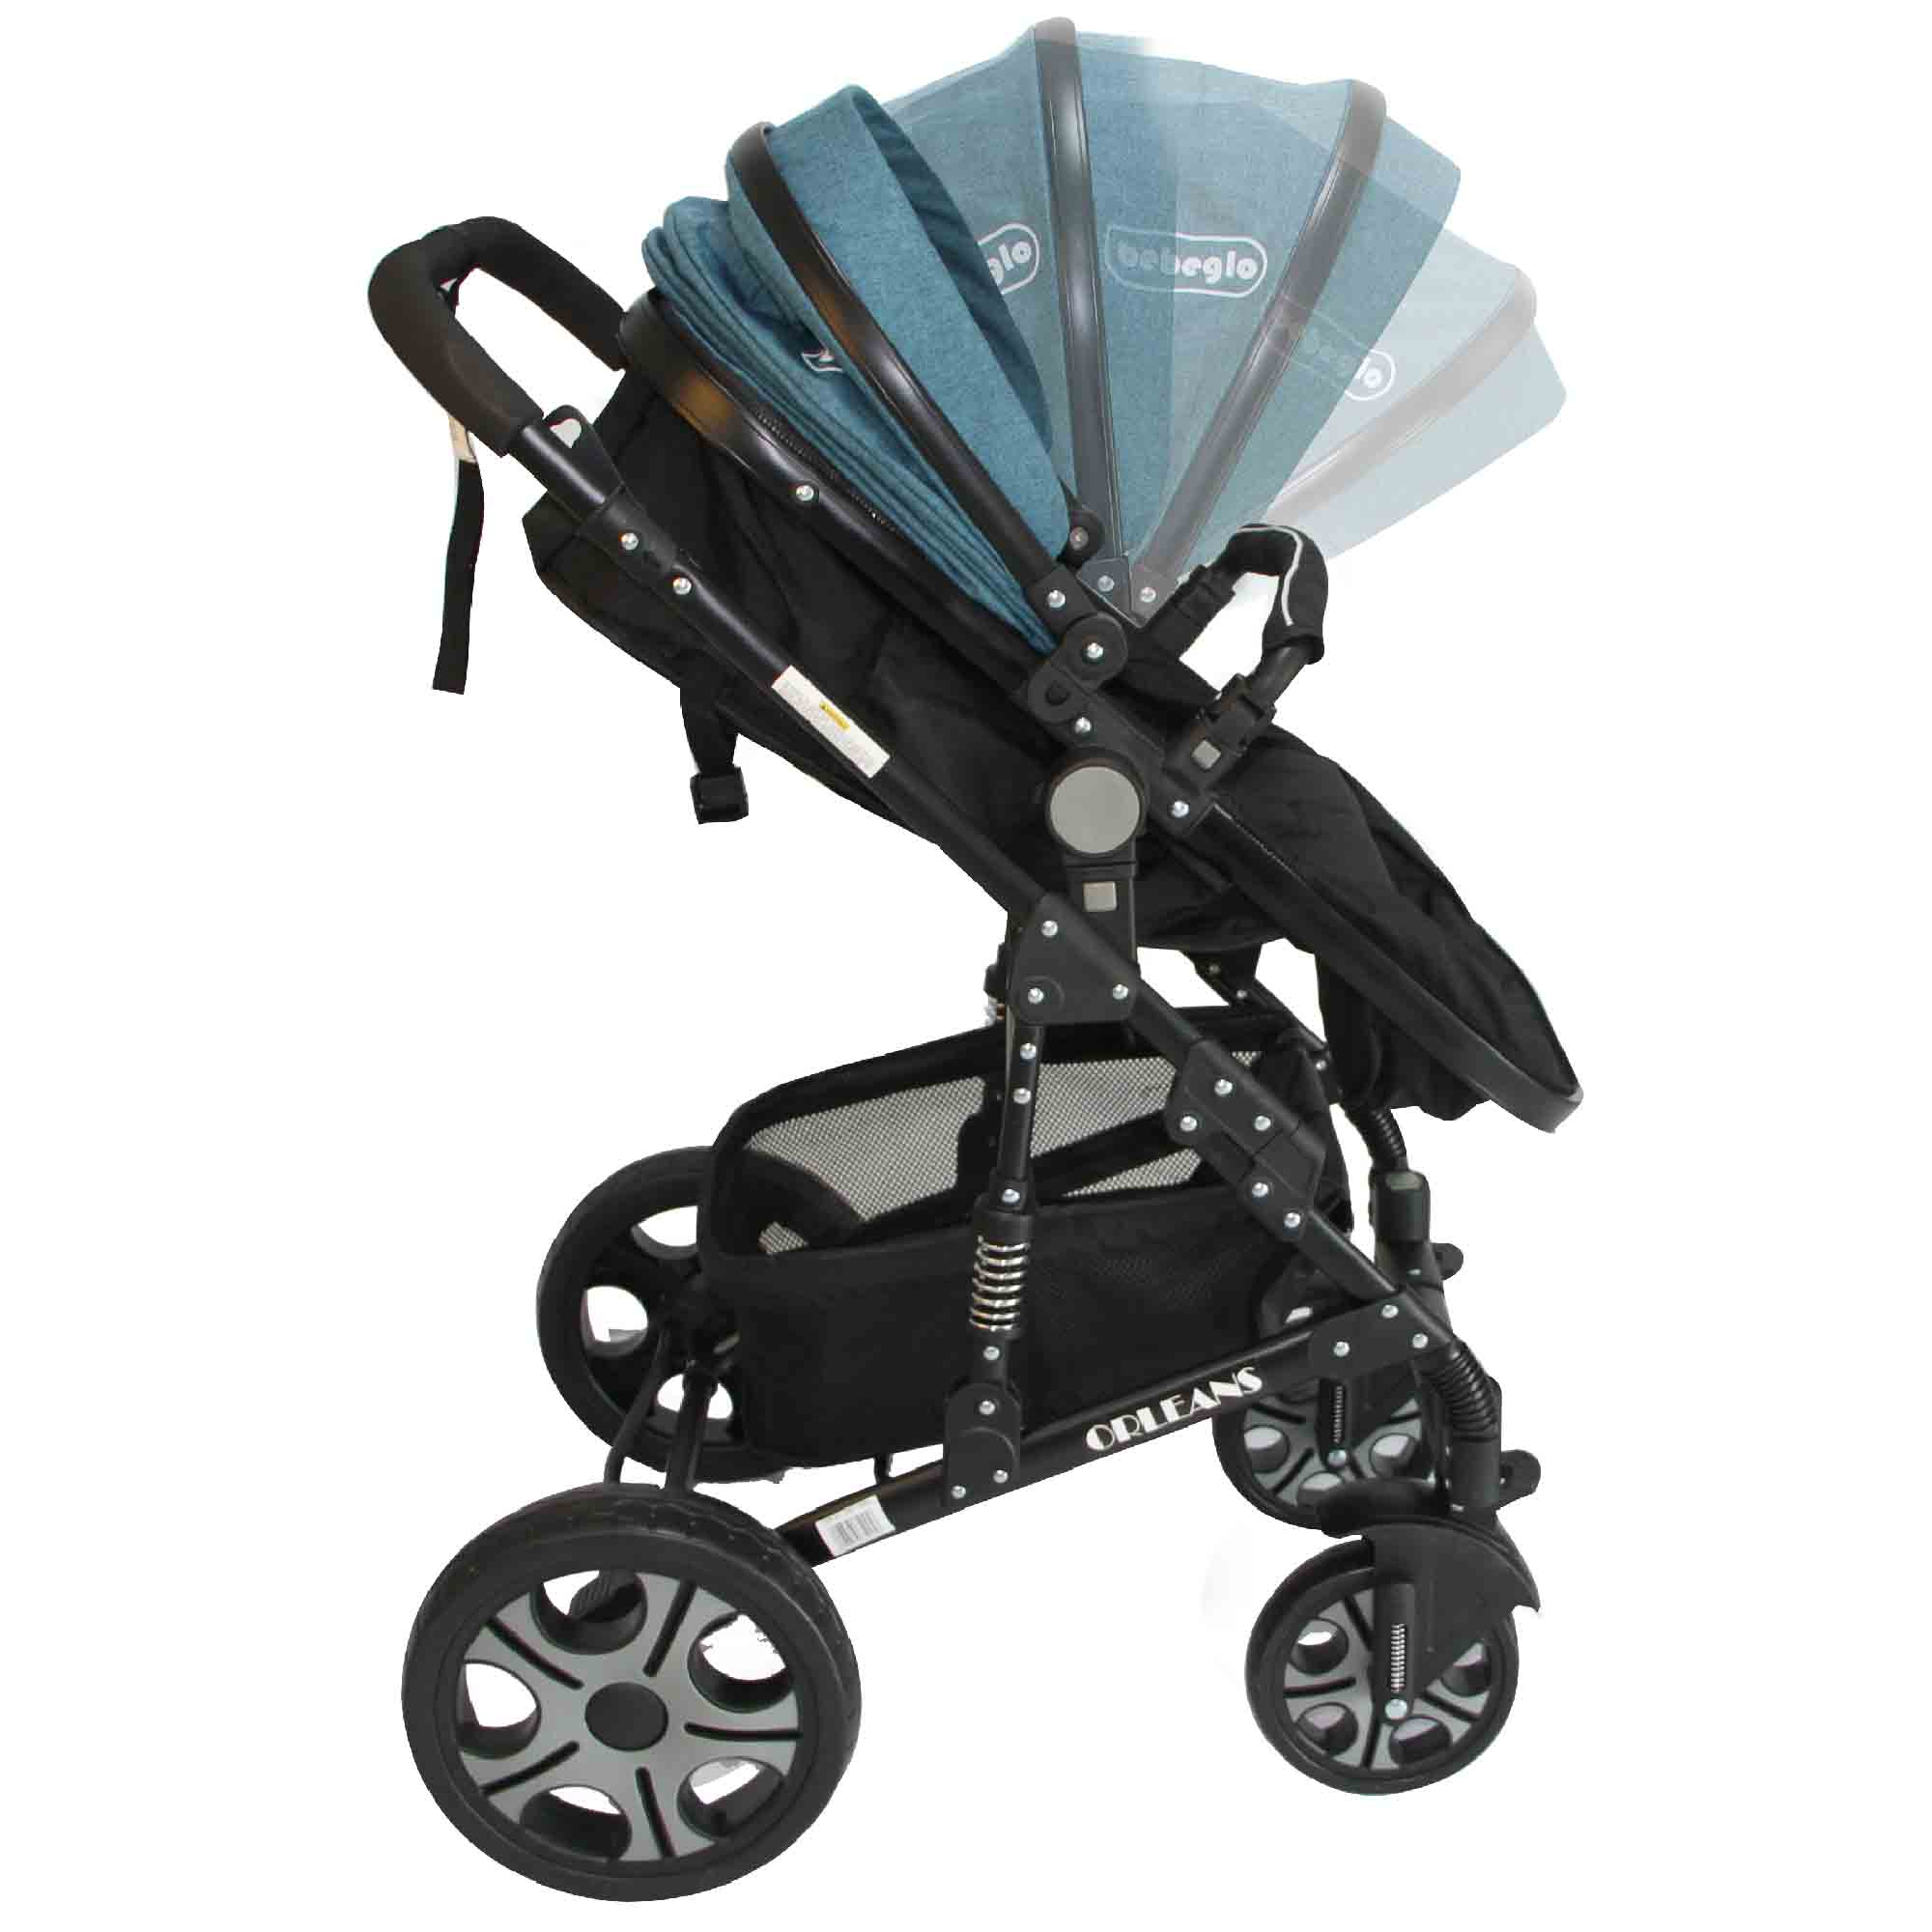 Coche Travel System Orleans RS-13650 Turquesa